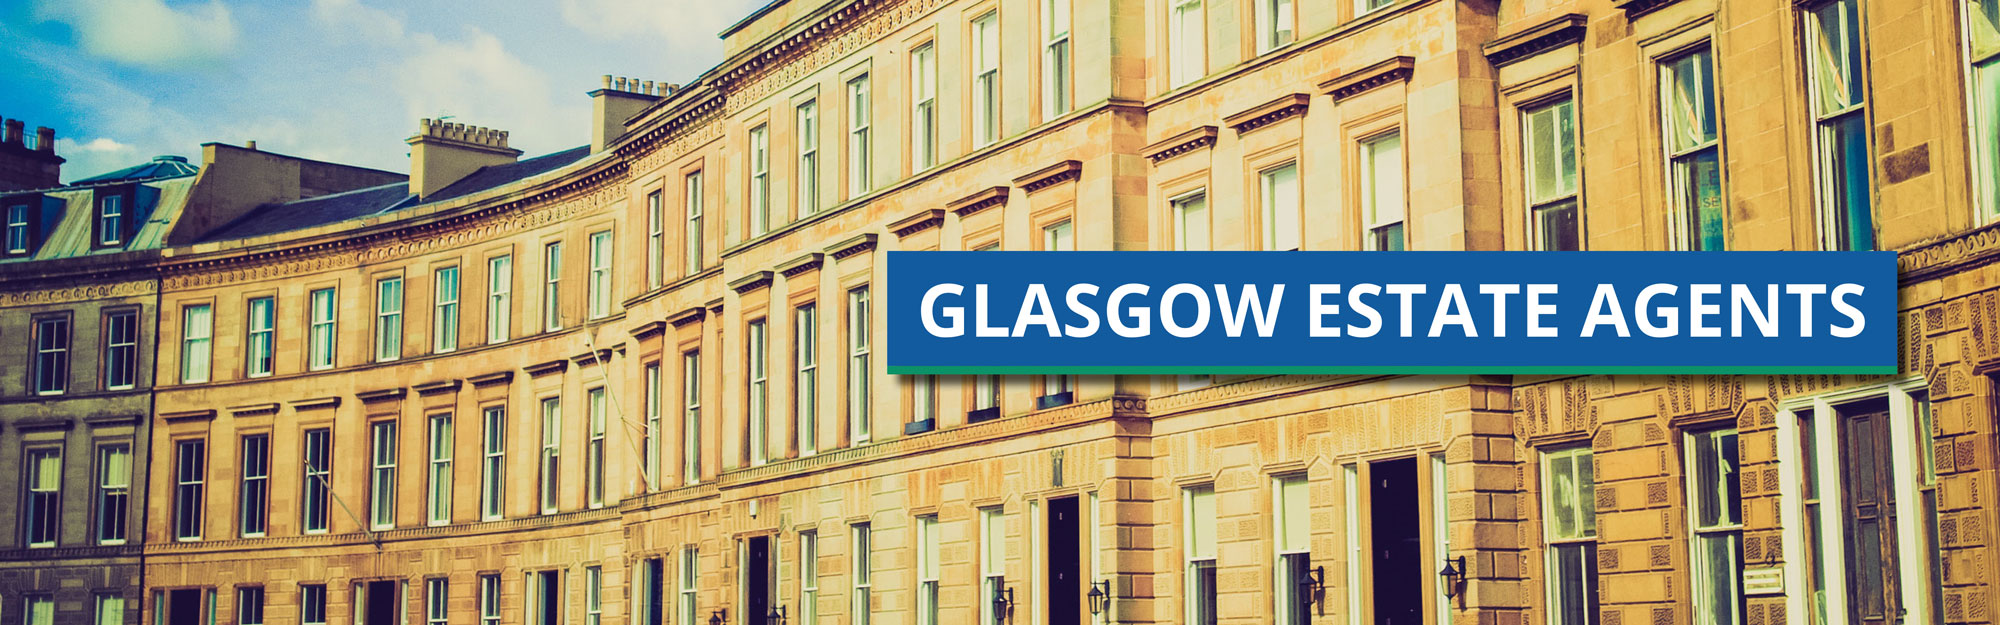 Property Services Glasgow